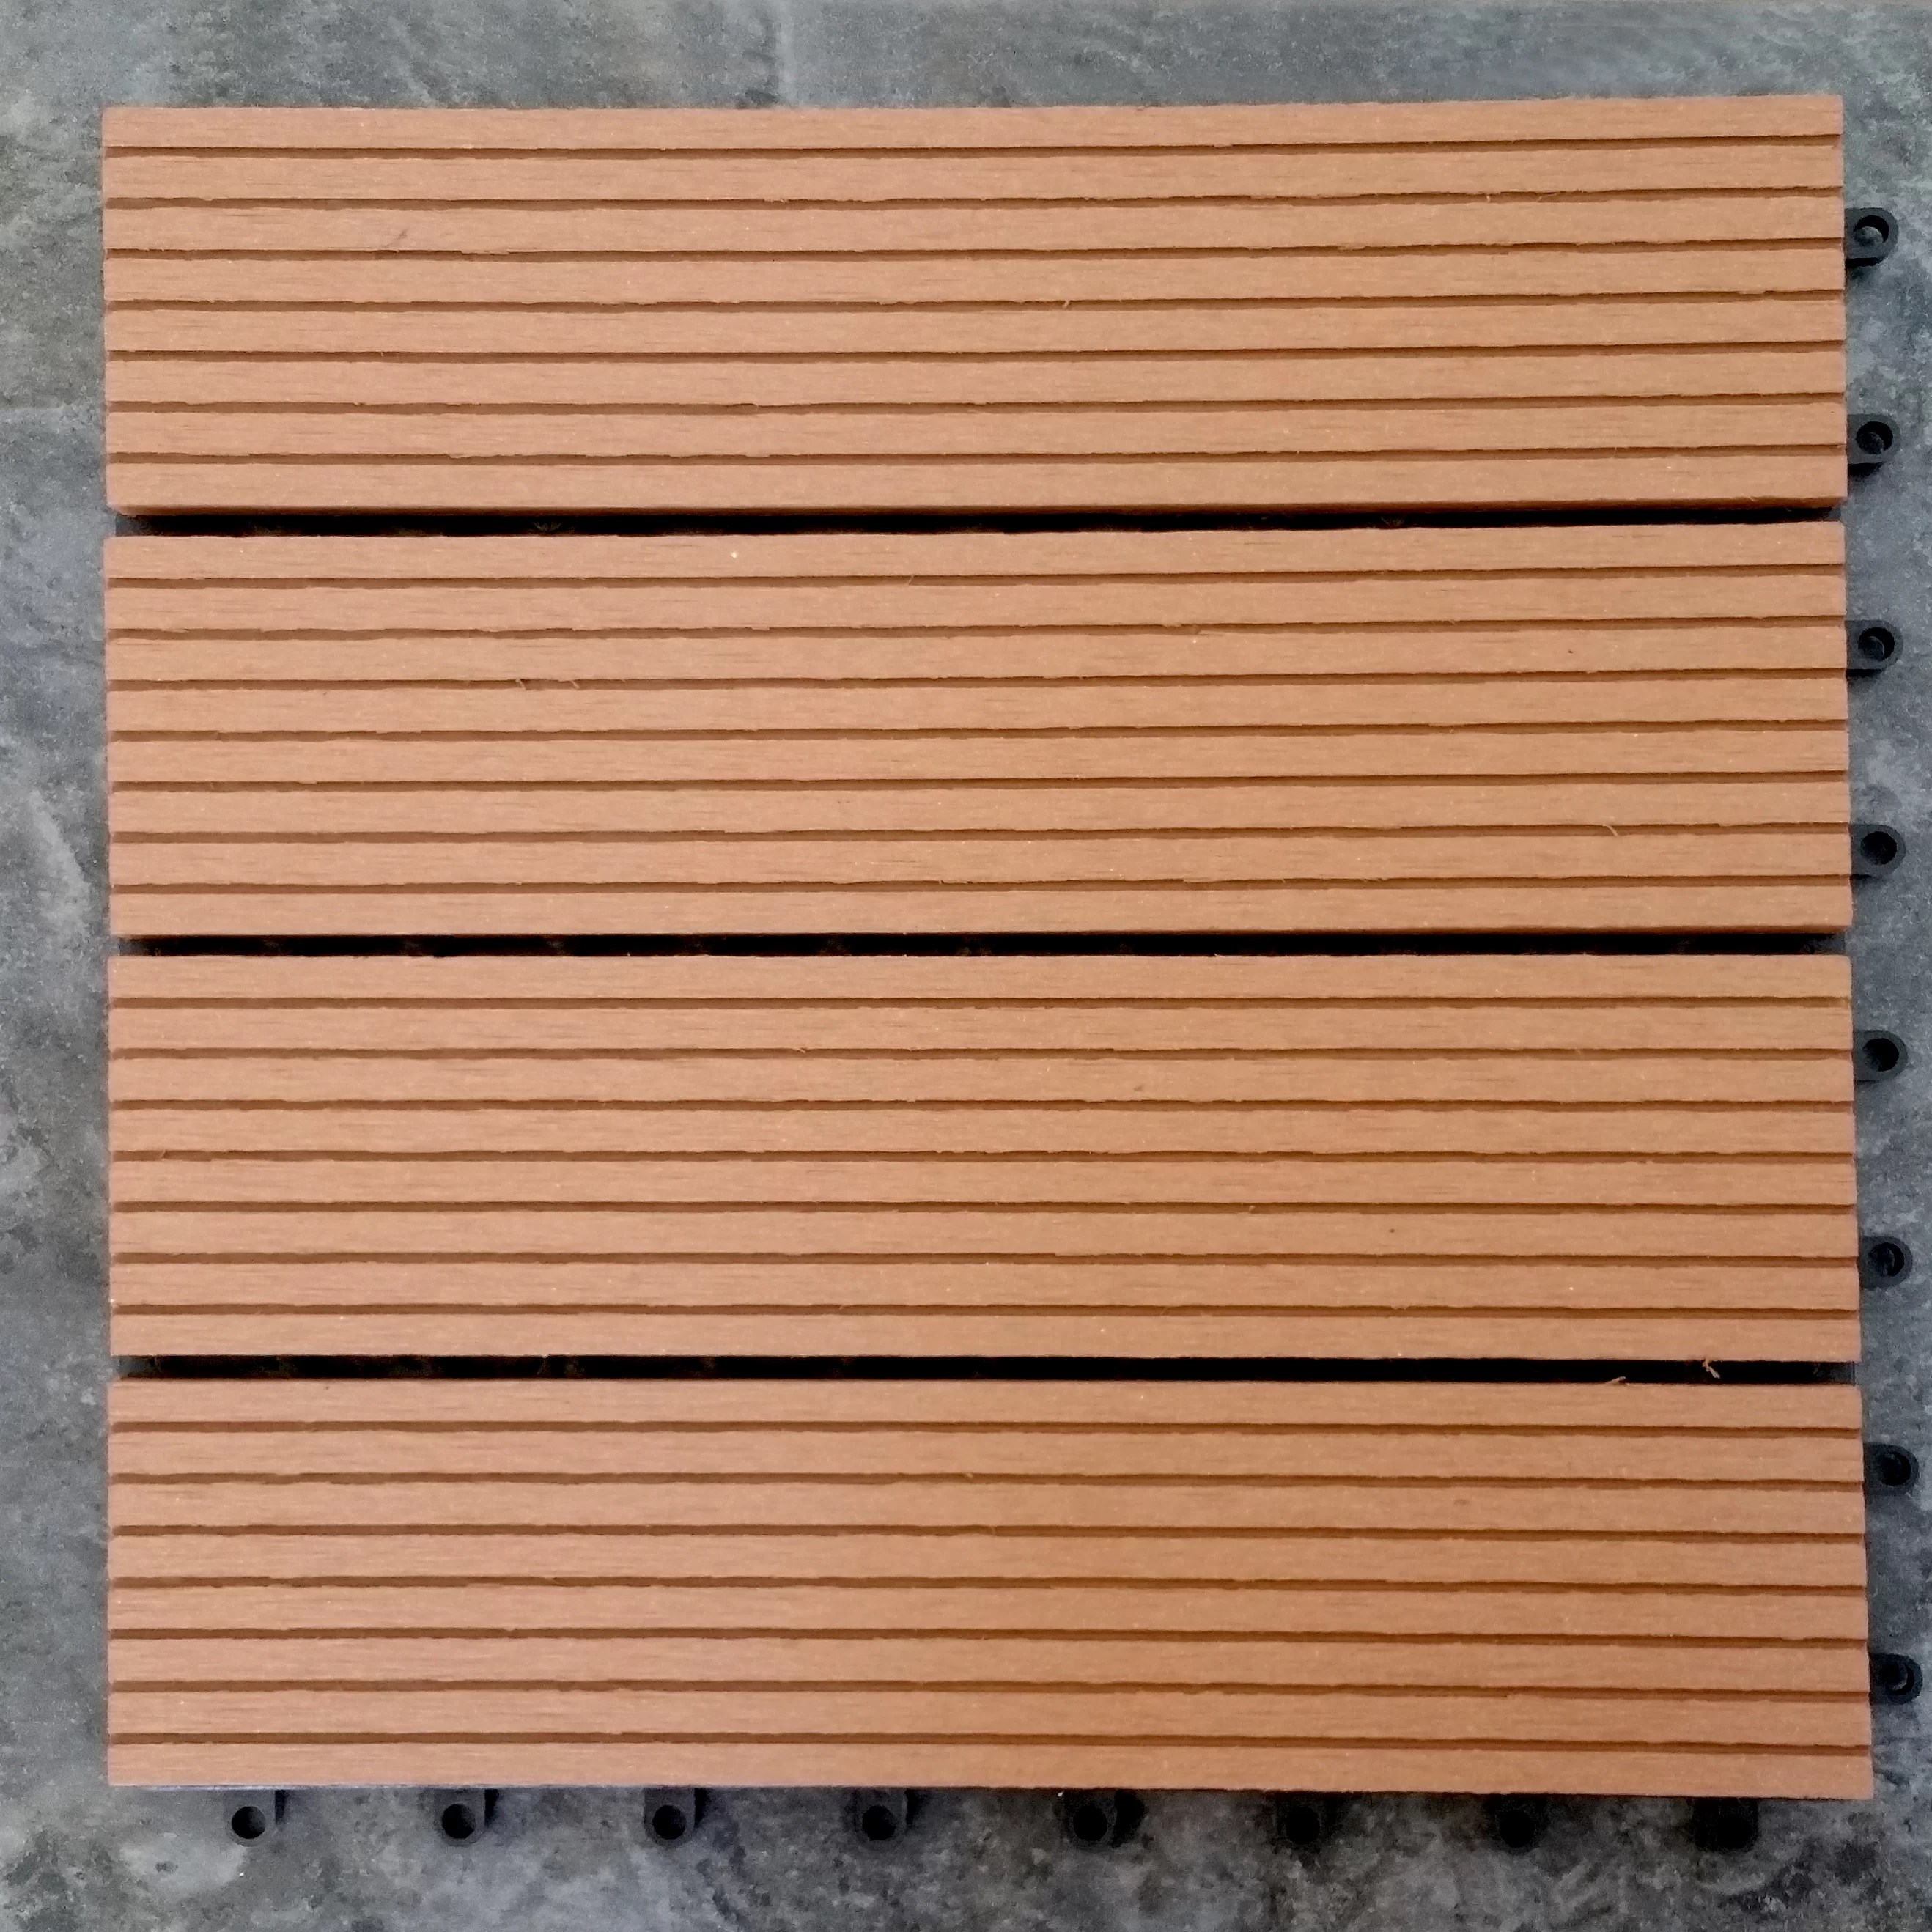 Interlocking Deck Tiles Composite Teak 12